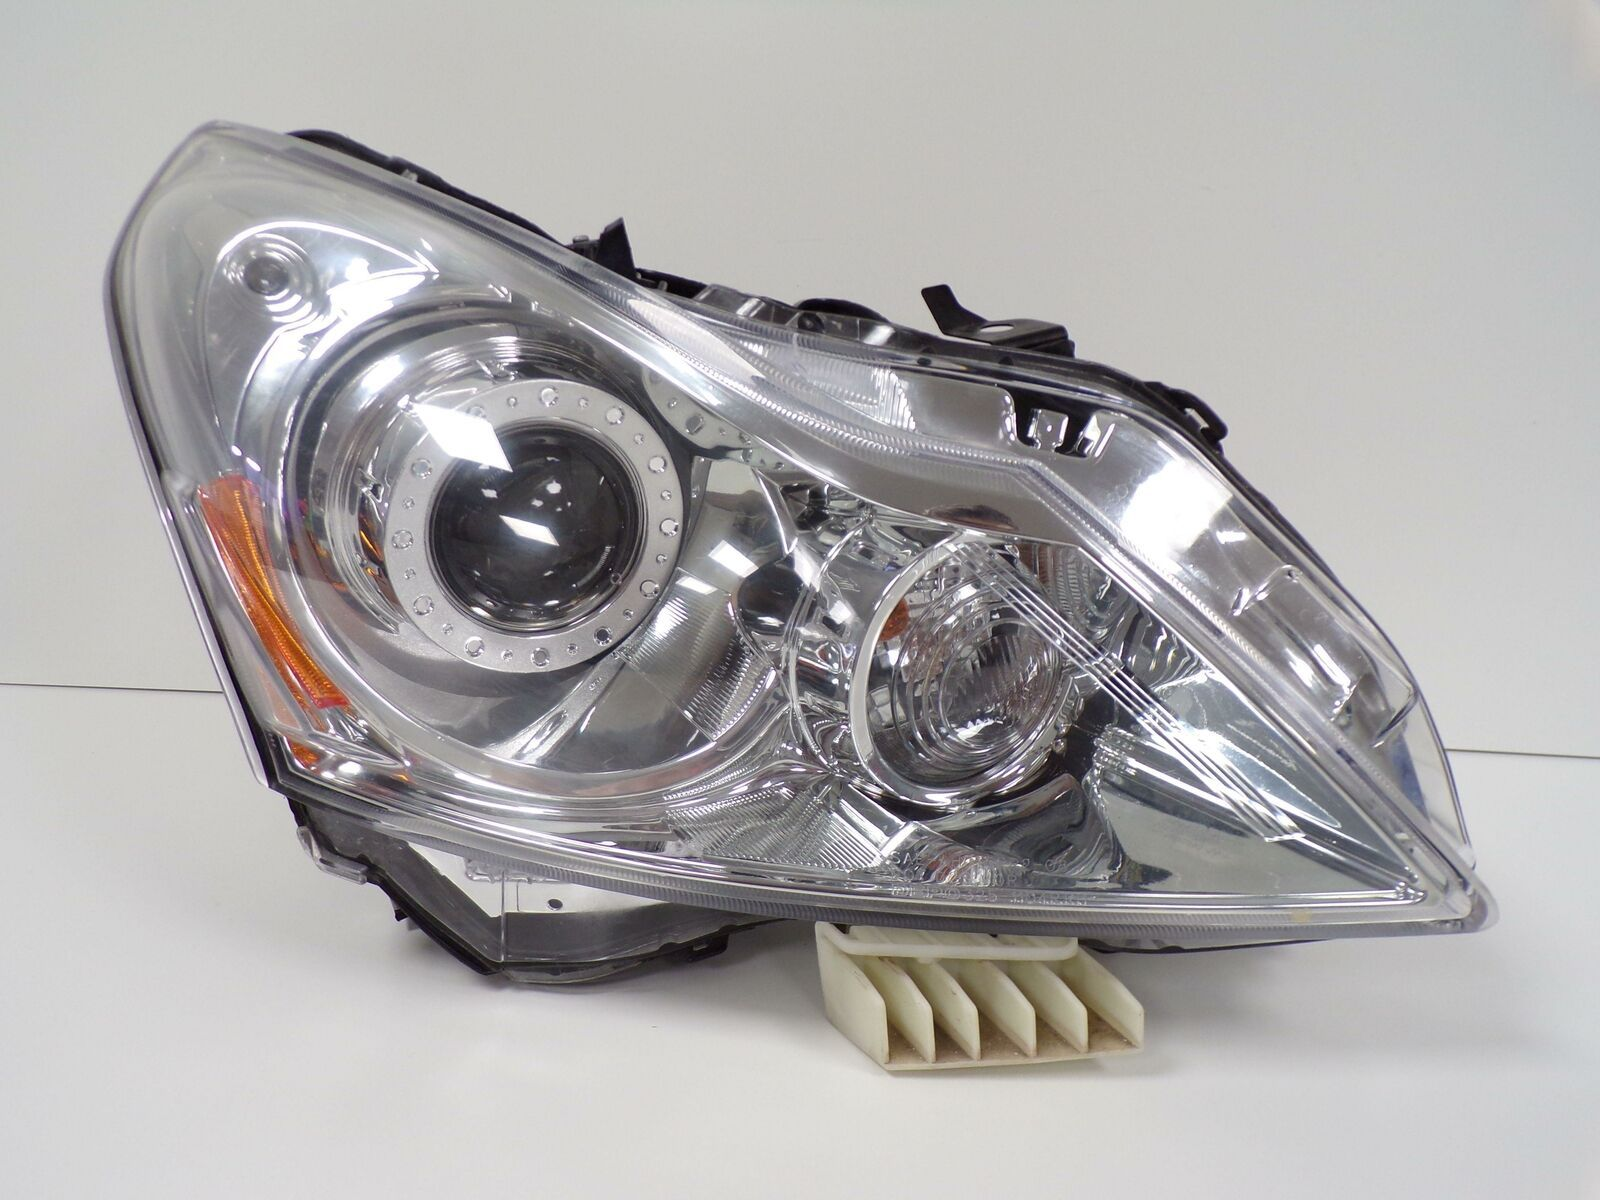 Primary image for 2010 2011 2012 2013 INFINITI G37 SEDAN PASSENGER RH XENON HID HEADLIGHT OEM B11R